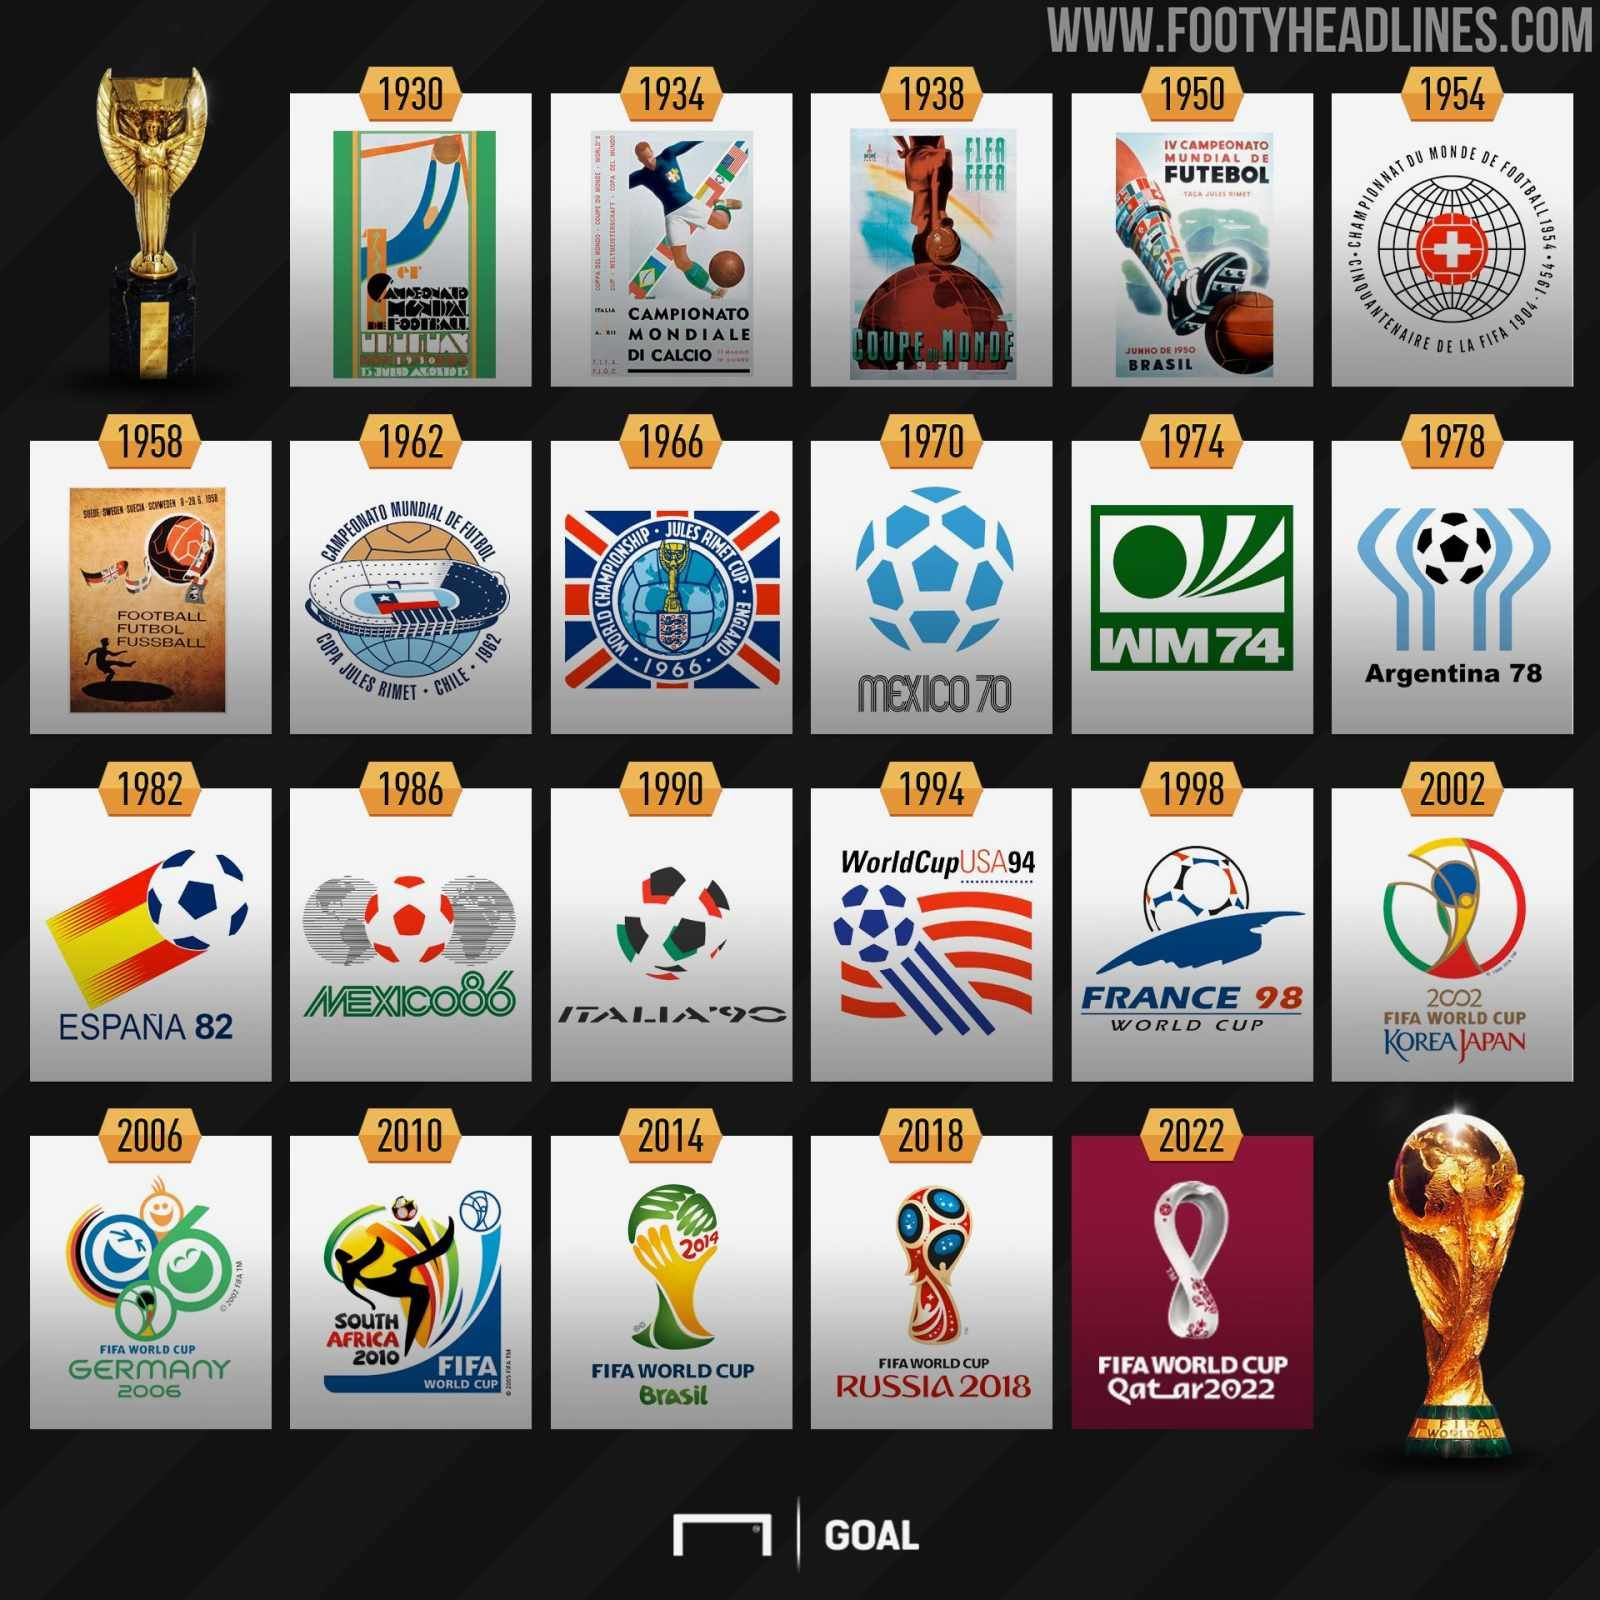 Full Fifa World Cup Logo History From 1930 Until 2022 Where Does Qatar 2022 Rank Footy Headlines Copa Do Mundo Copa Do Mundo 2022 Copa Do Mundo Fifa